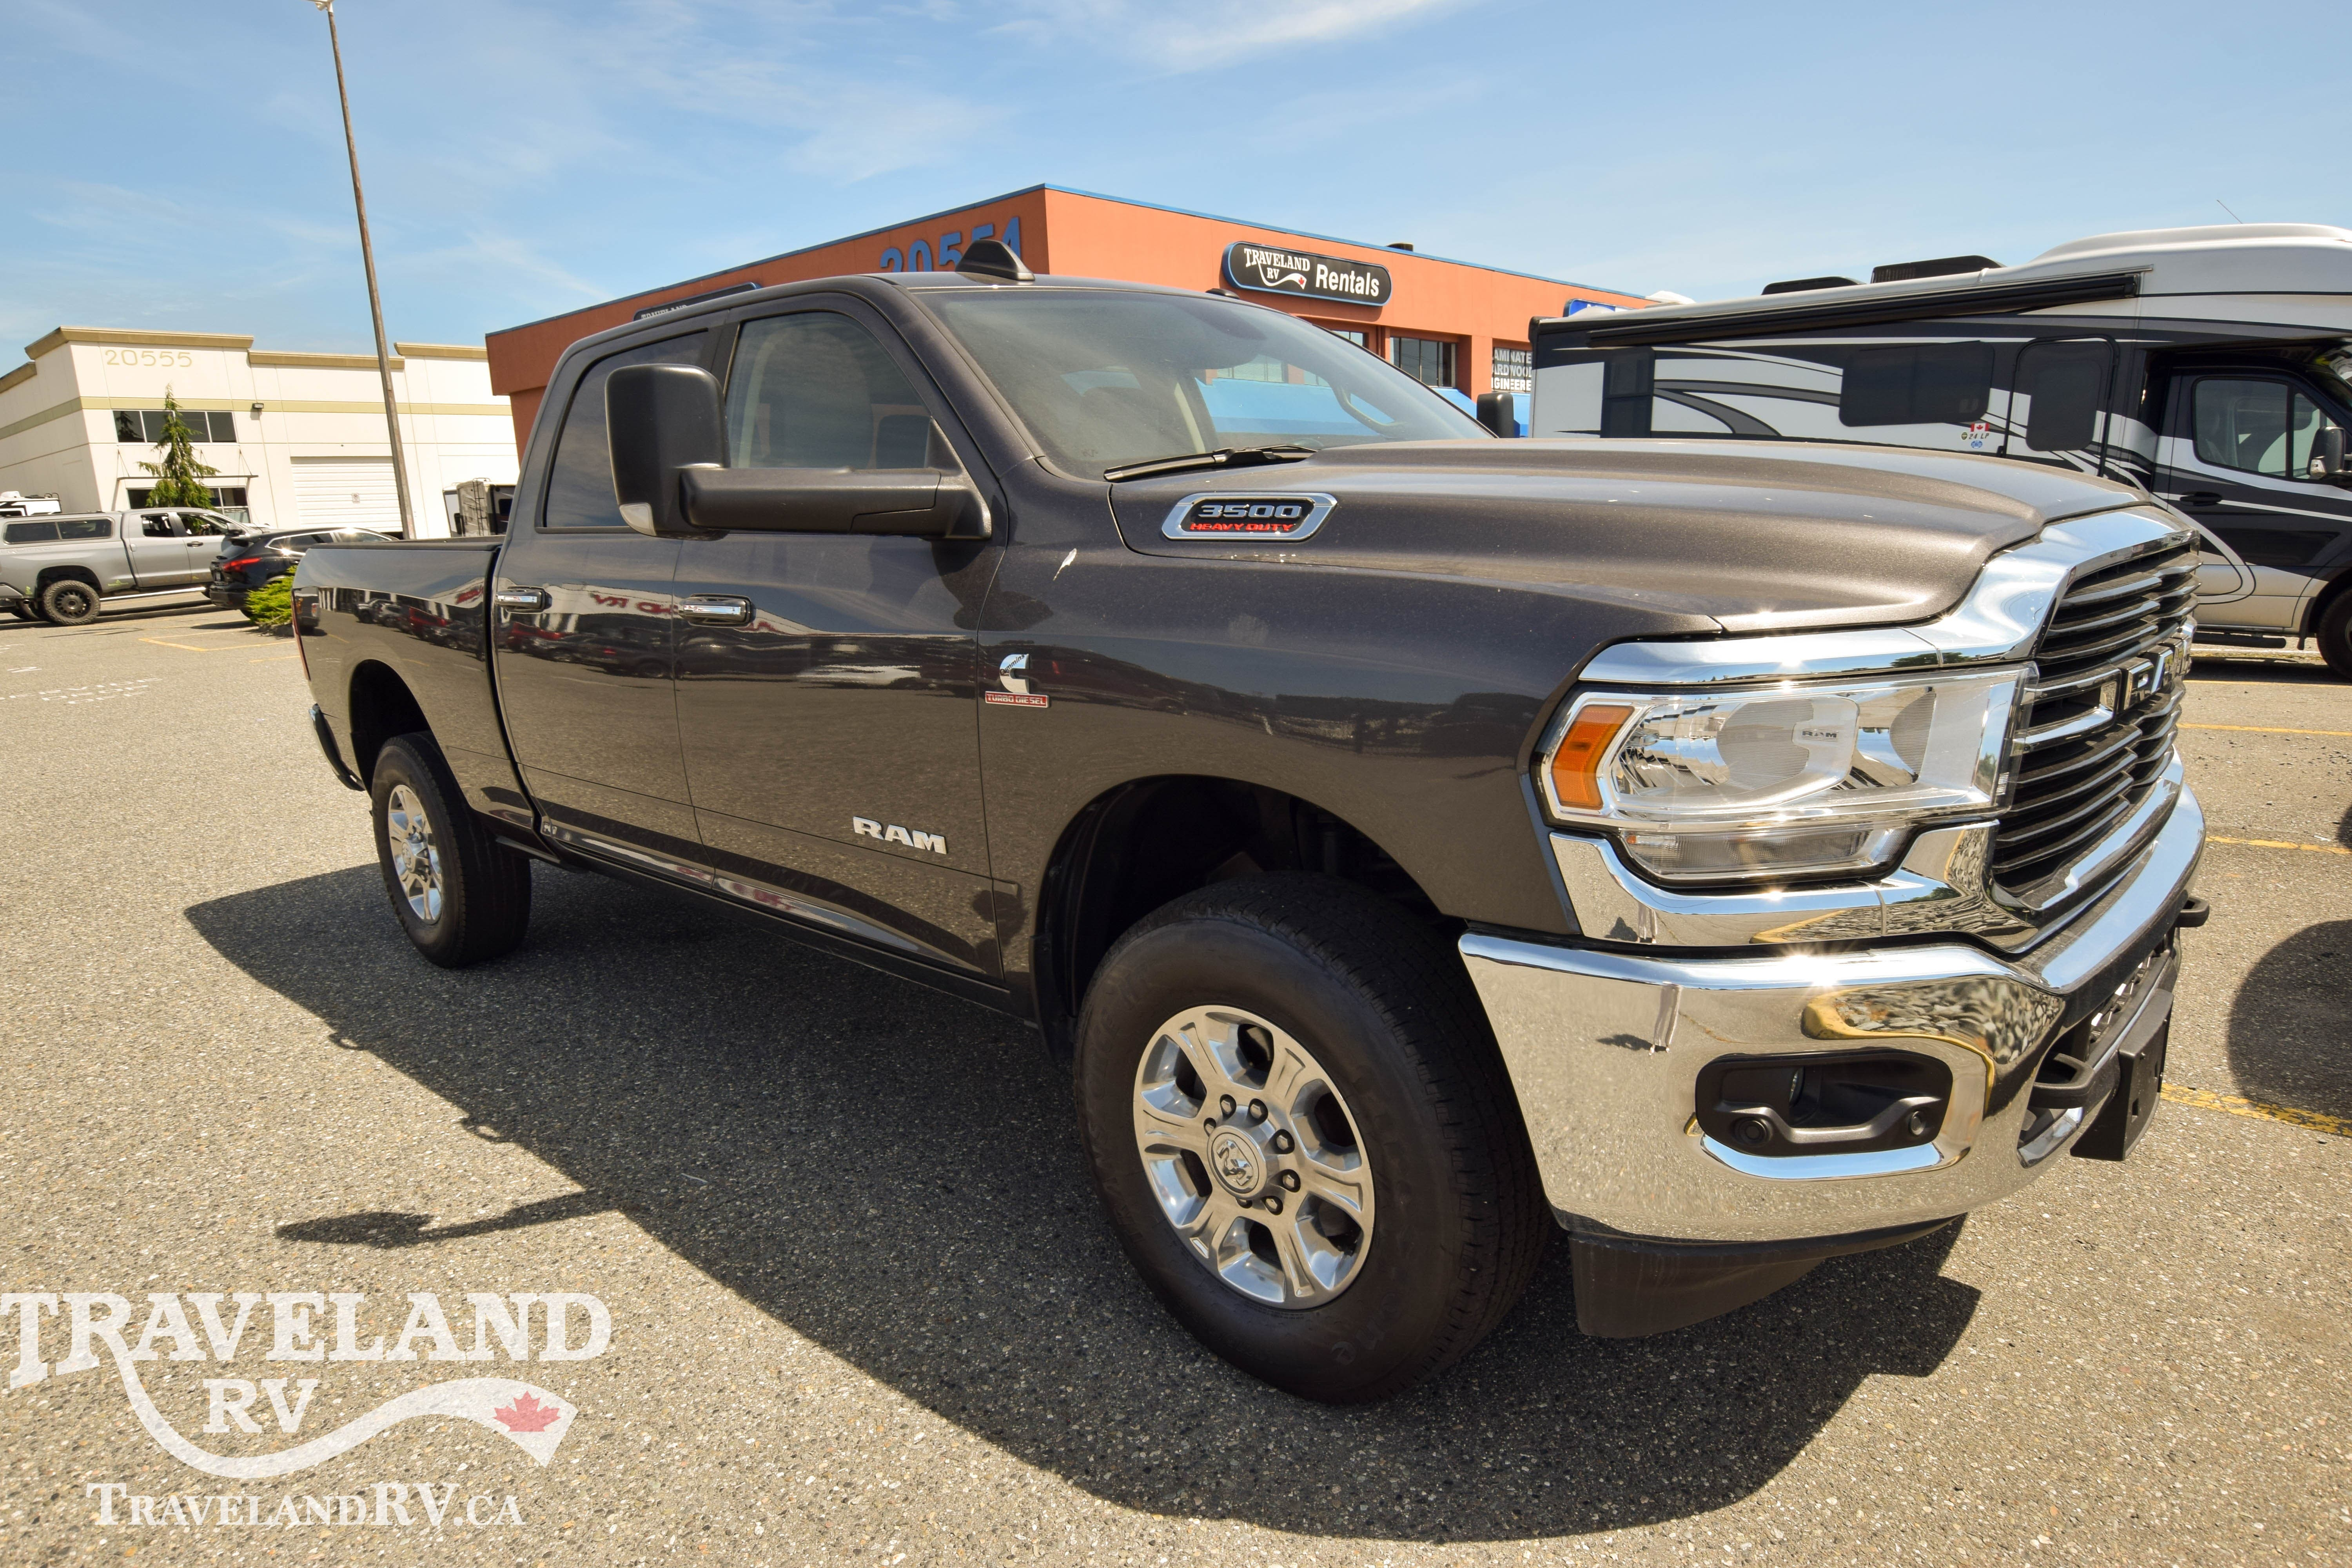 2019 Dodge Ram BIG HORN Thumbnail